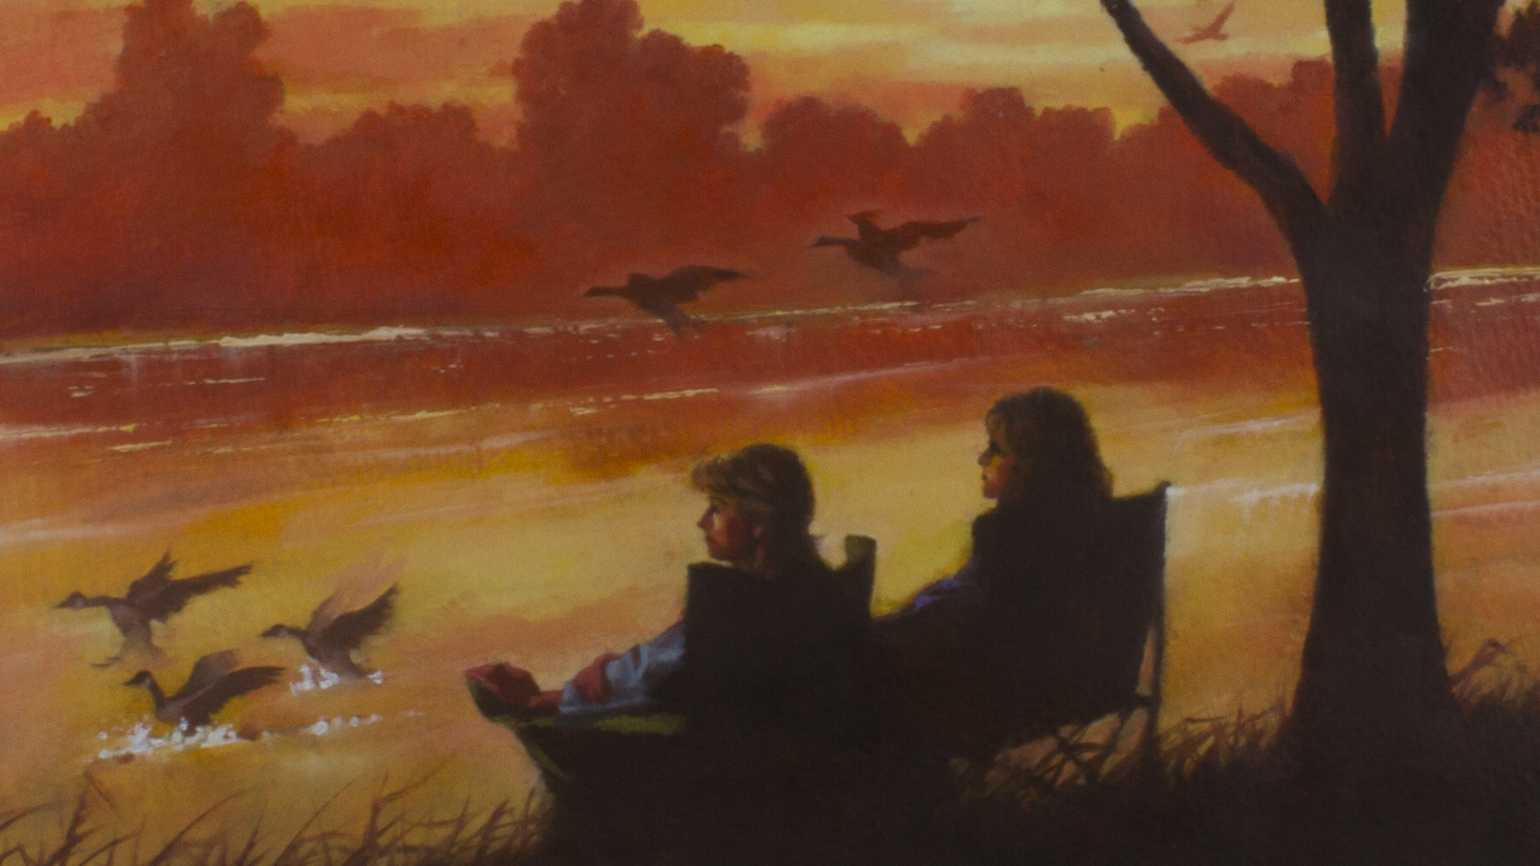 An artist's rendering of a mother and son fishing during a sunset.